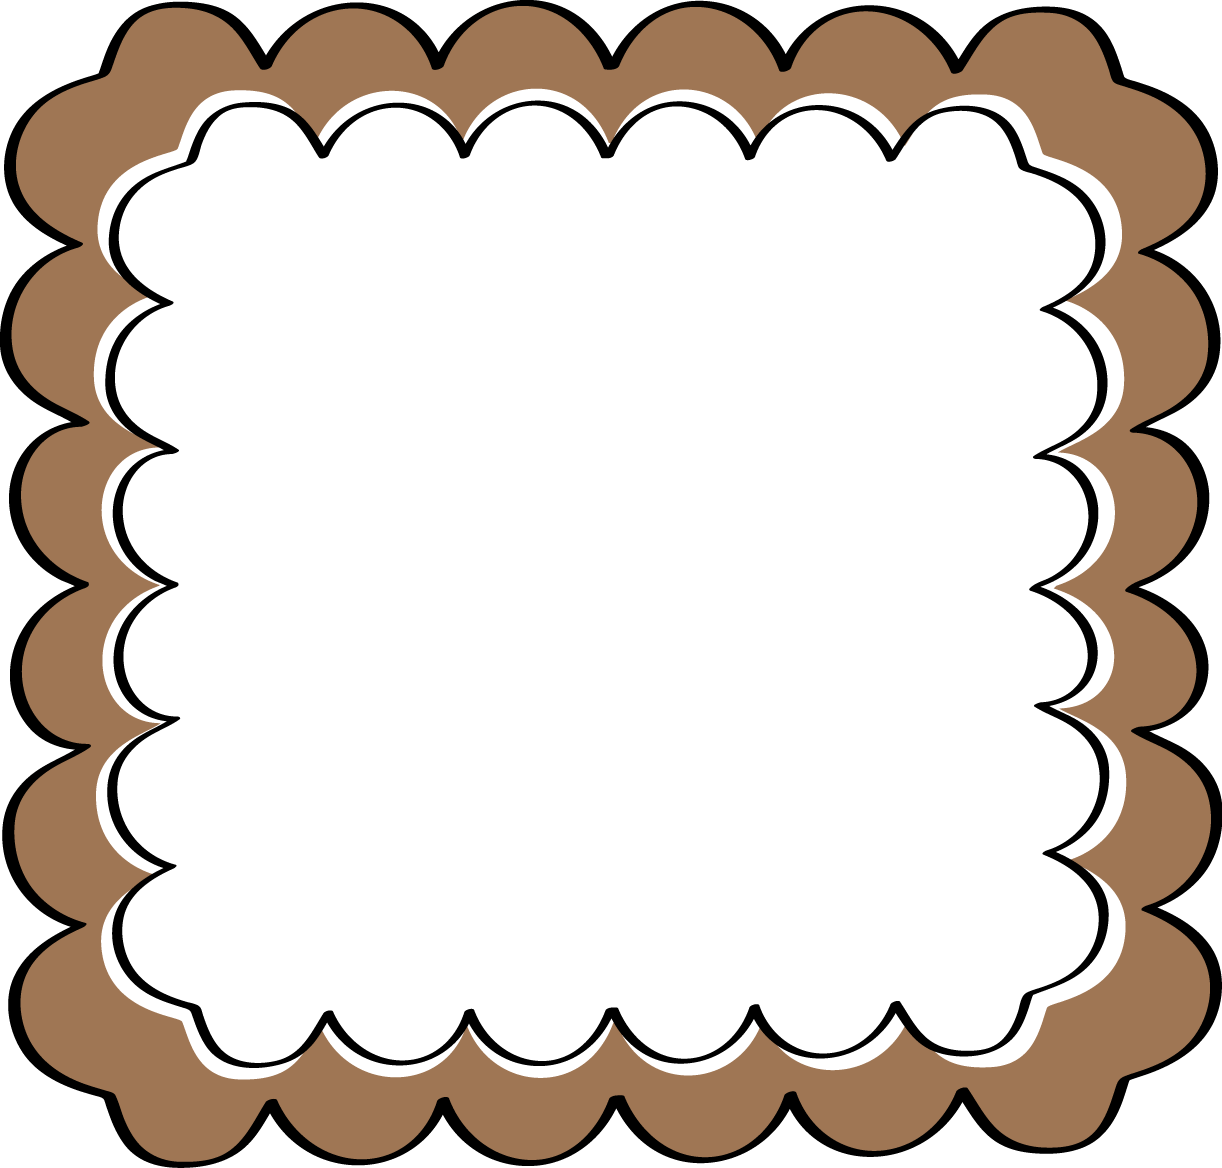 Cover clipart frame Clip Brown Frame Scalloped Art